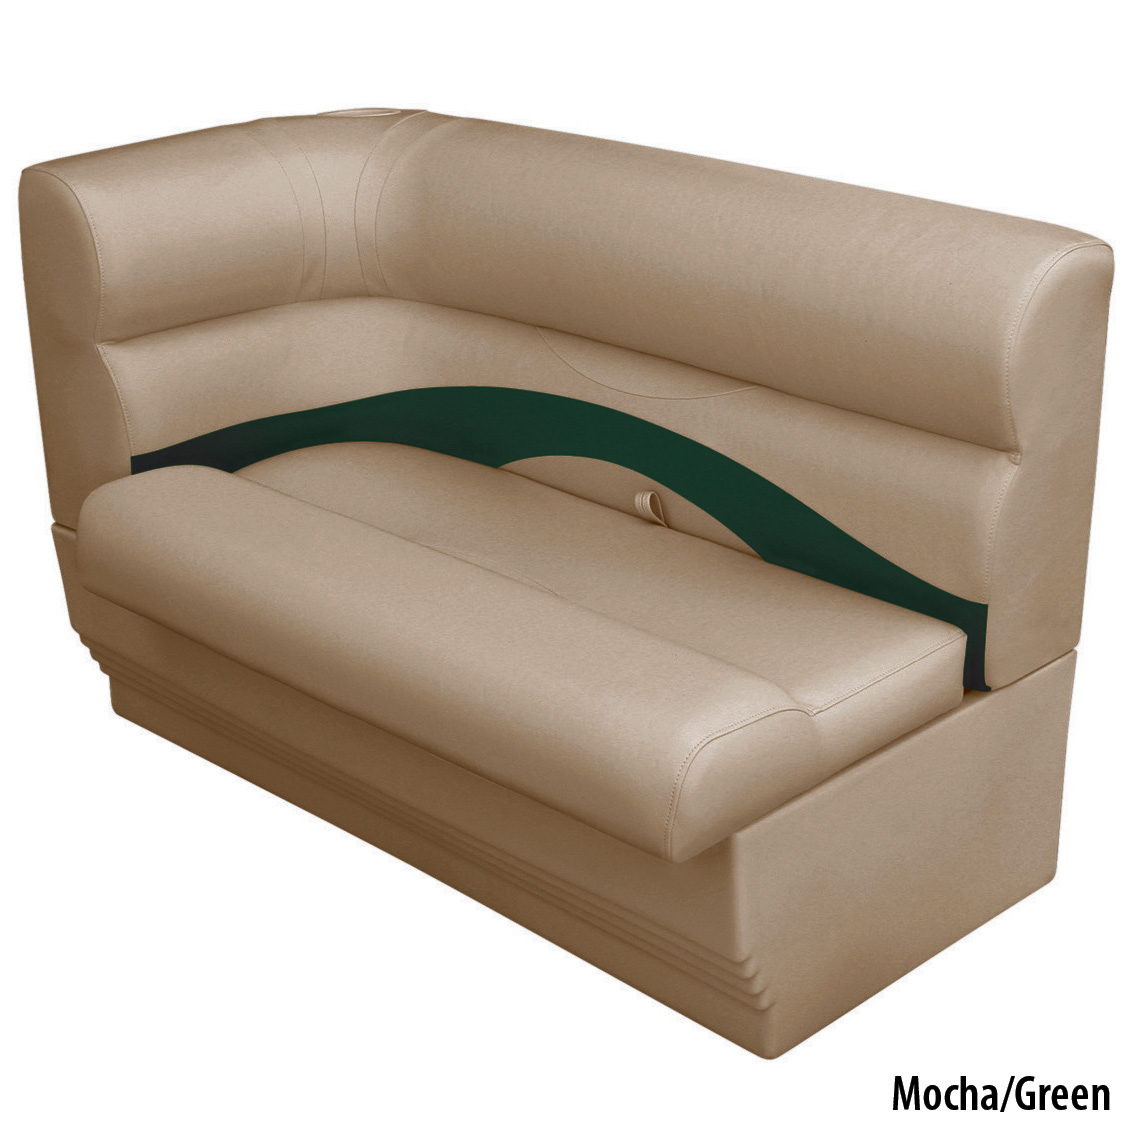 Toonmate Premium Pontoon Right-Side Corner Couch w/Mocha Base